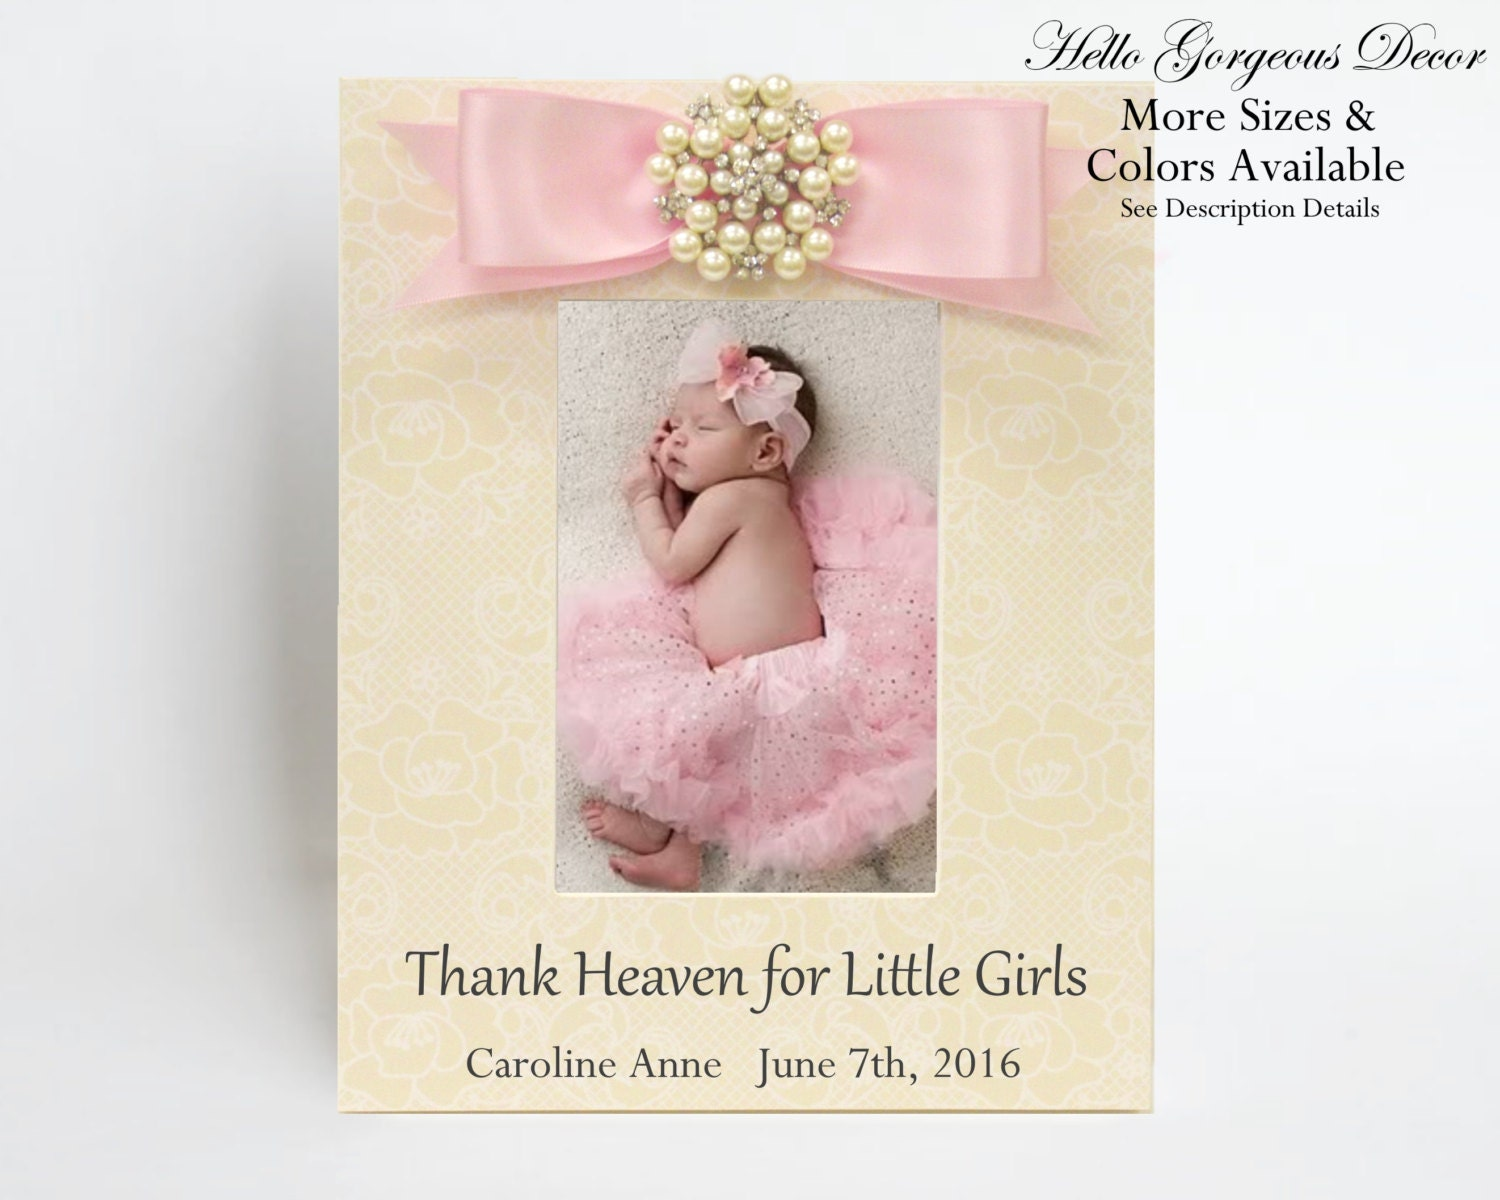 Newborn Baby Gift Ideas Girl : Baby picture frame gift for new girl personalized